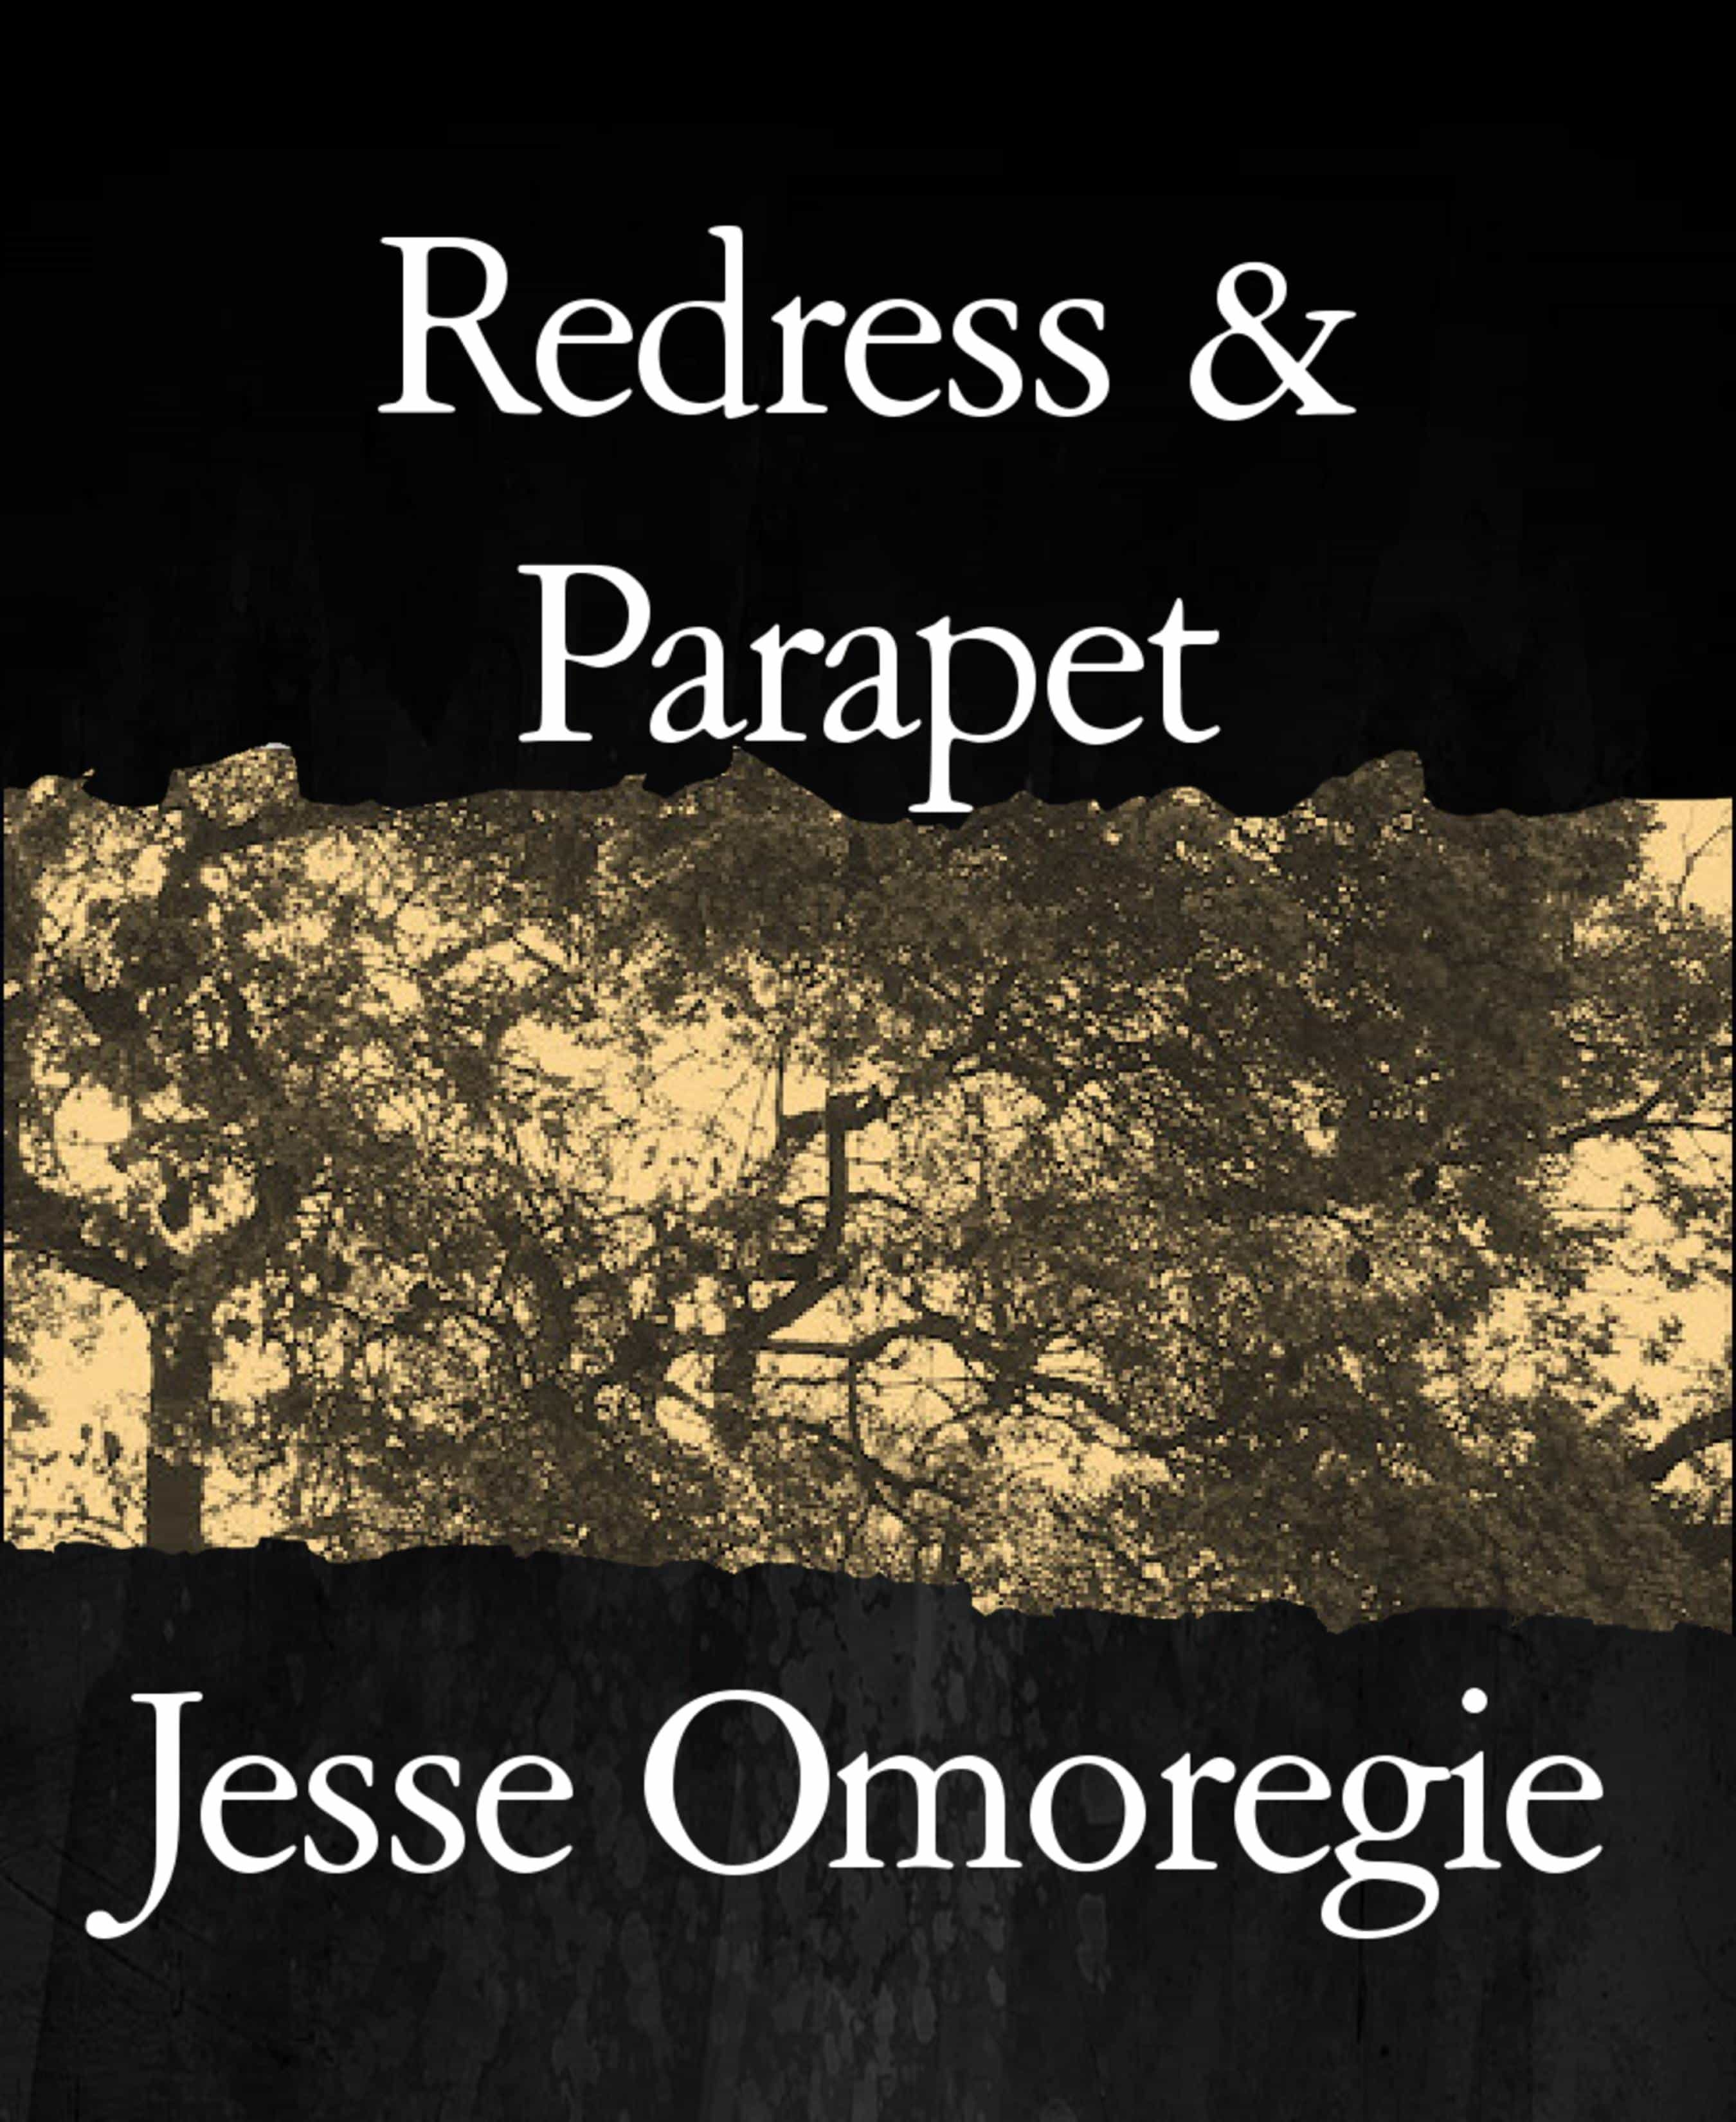 REDRESS & PARAPET